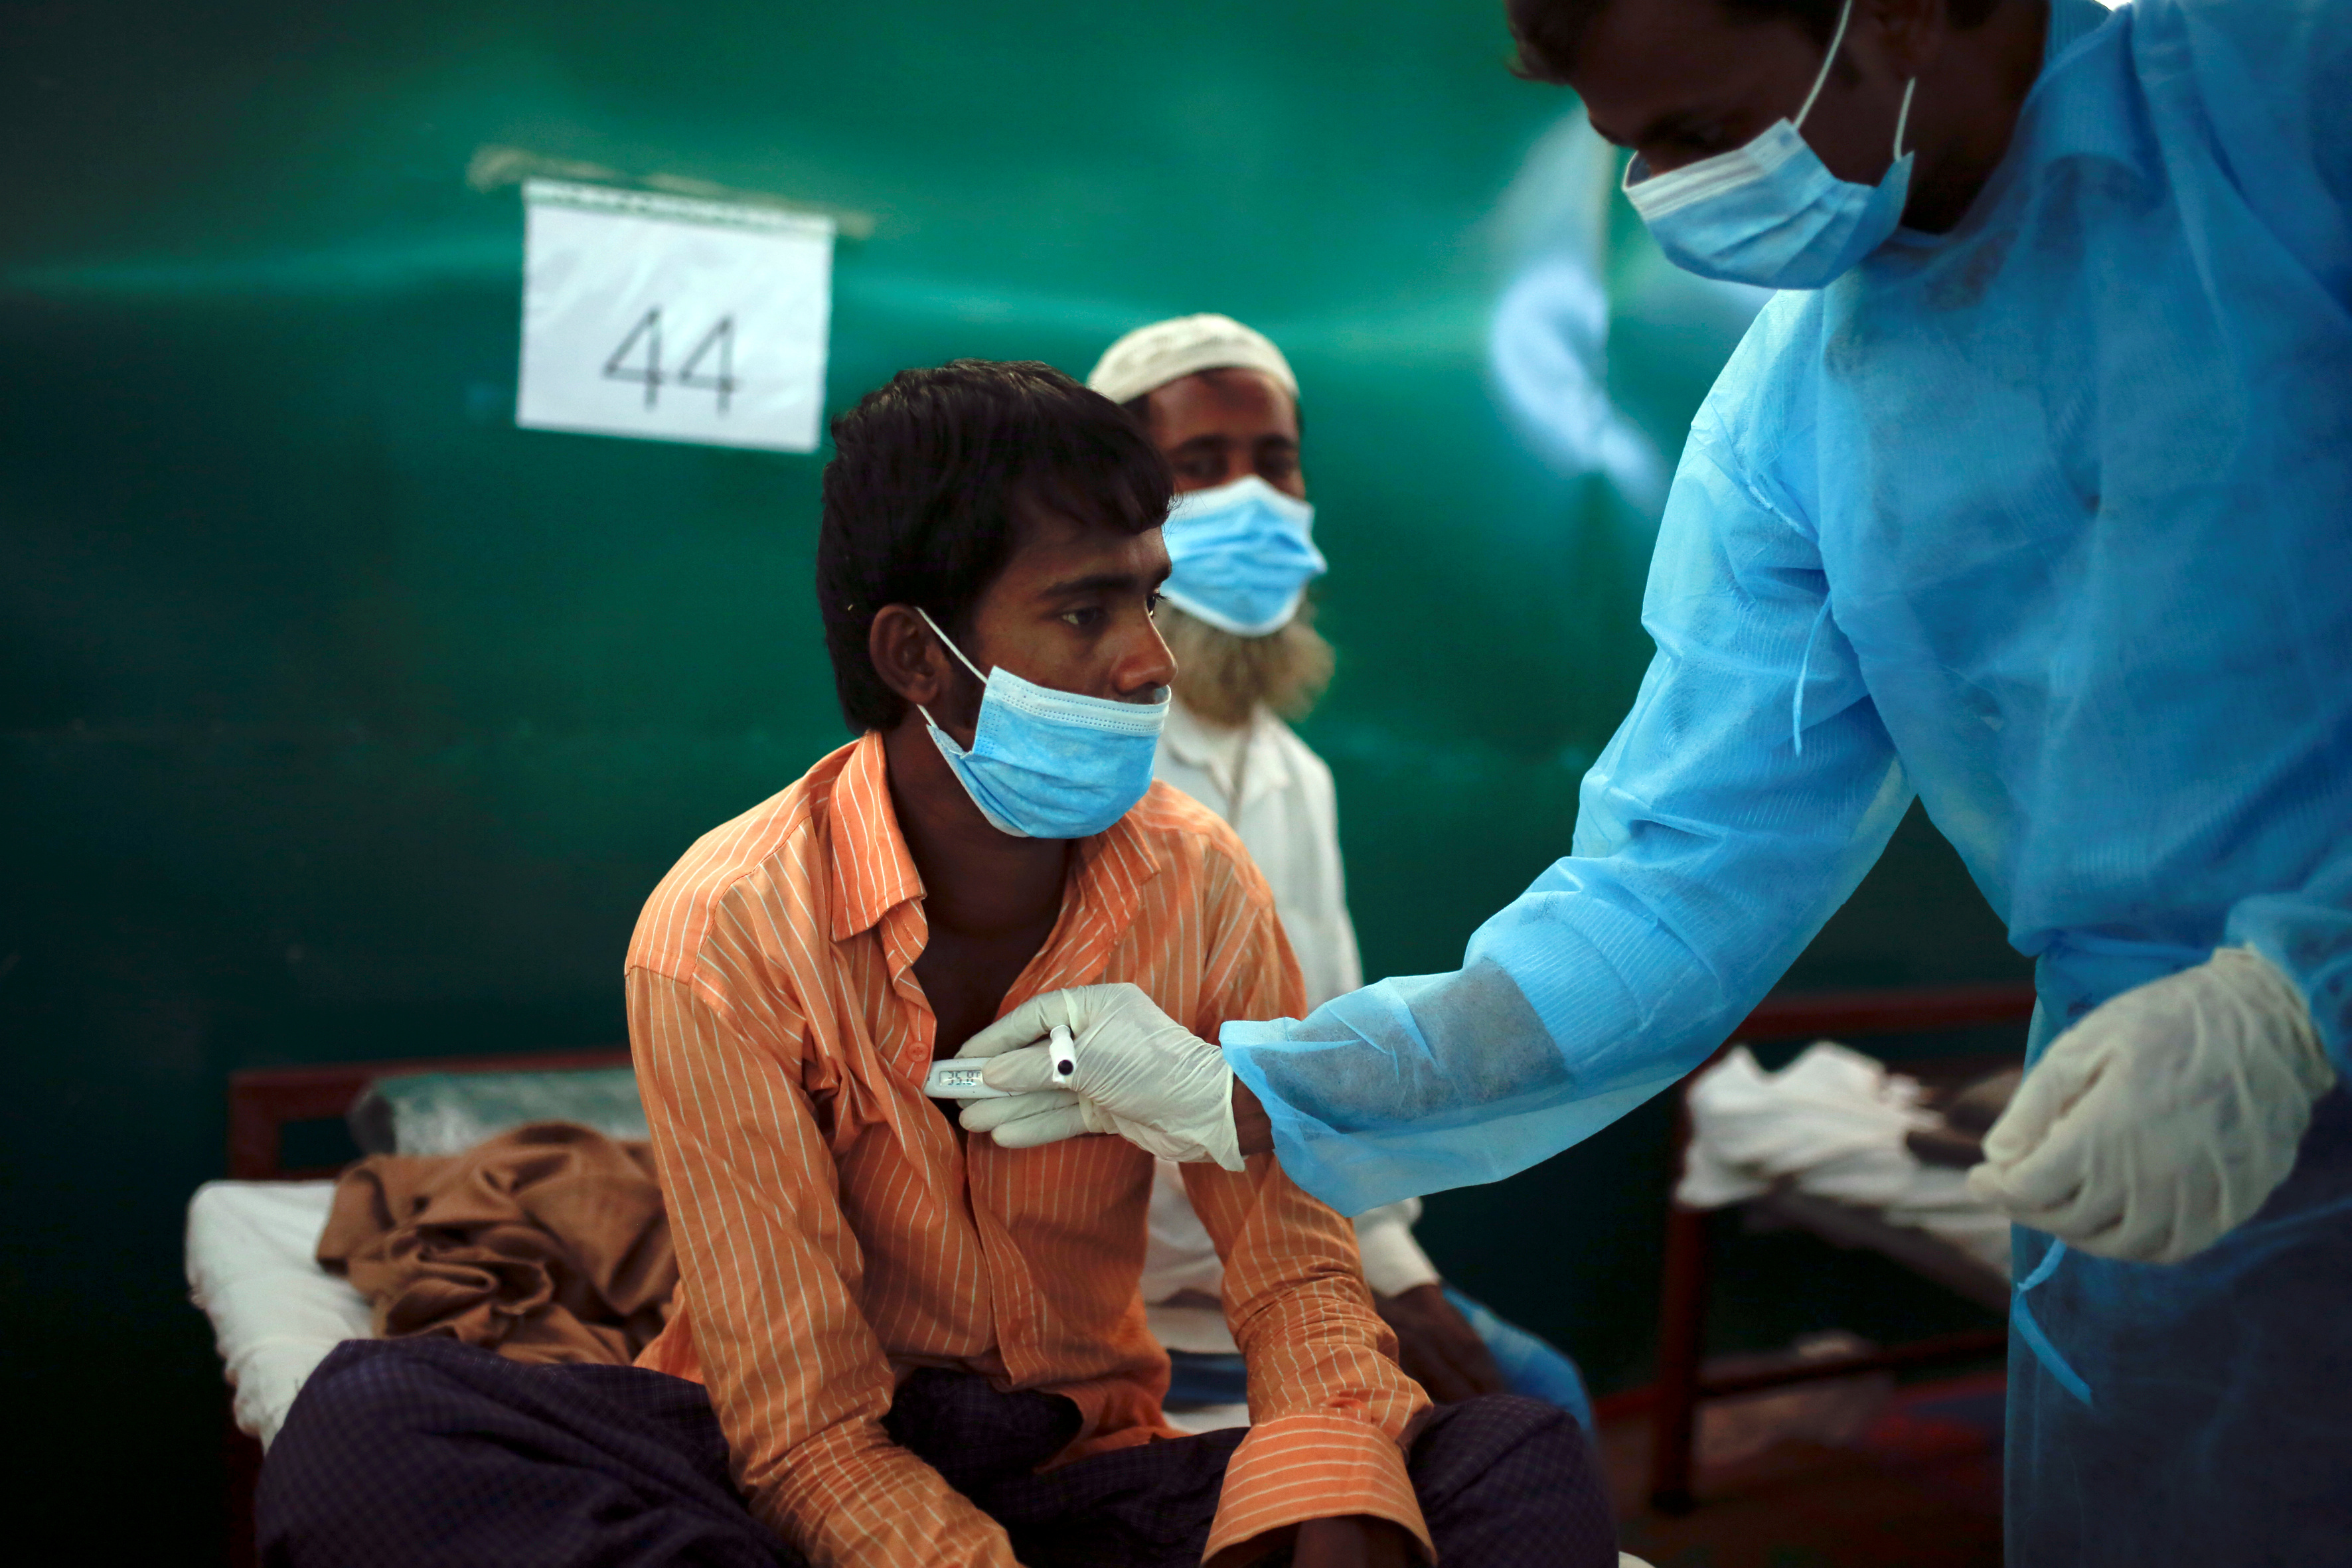 Rohingya refugee Nur Islam, 24, who suffers from diphtheria, is examined by a doctor at a Medecins Sans Frontieres (MSF) clinic near Cox's Bazar, Bangladesh December 18, 2017. According to the World Health Organisation (WHO) from November 3 through December 12, a total of 804 suspected diphtheria cases including 15 deaths were reported among the displaced Rohingya population in Cox's Bazar. REUTERS/Alkis Konstantinidis